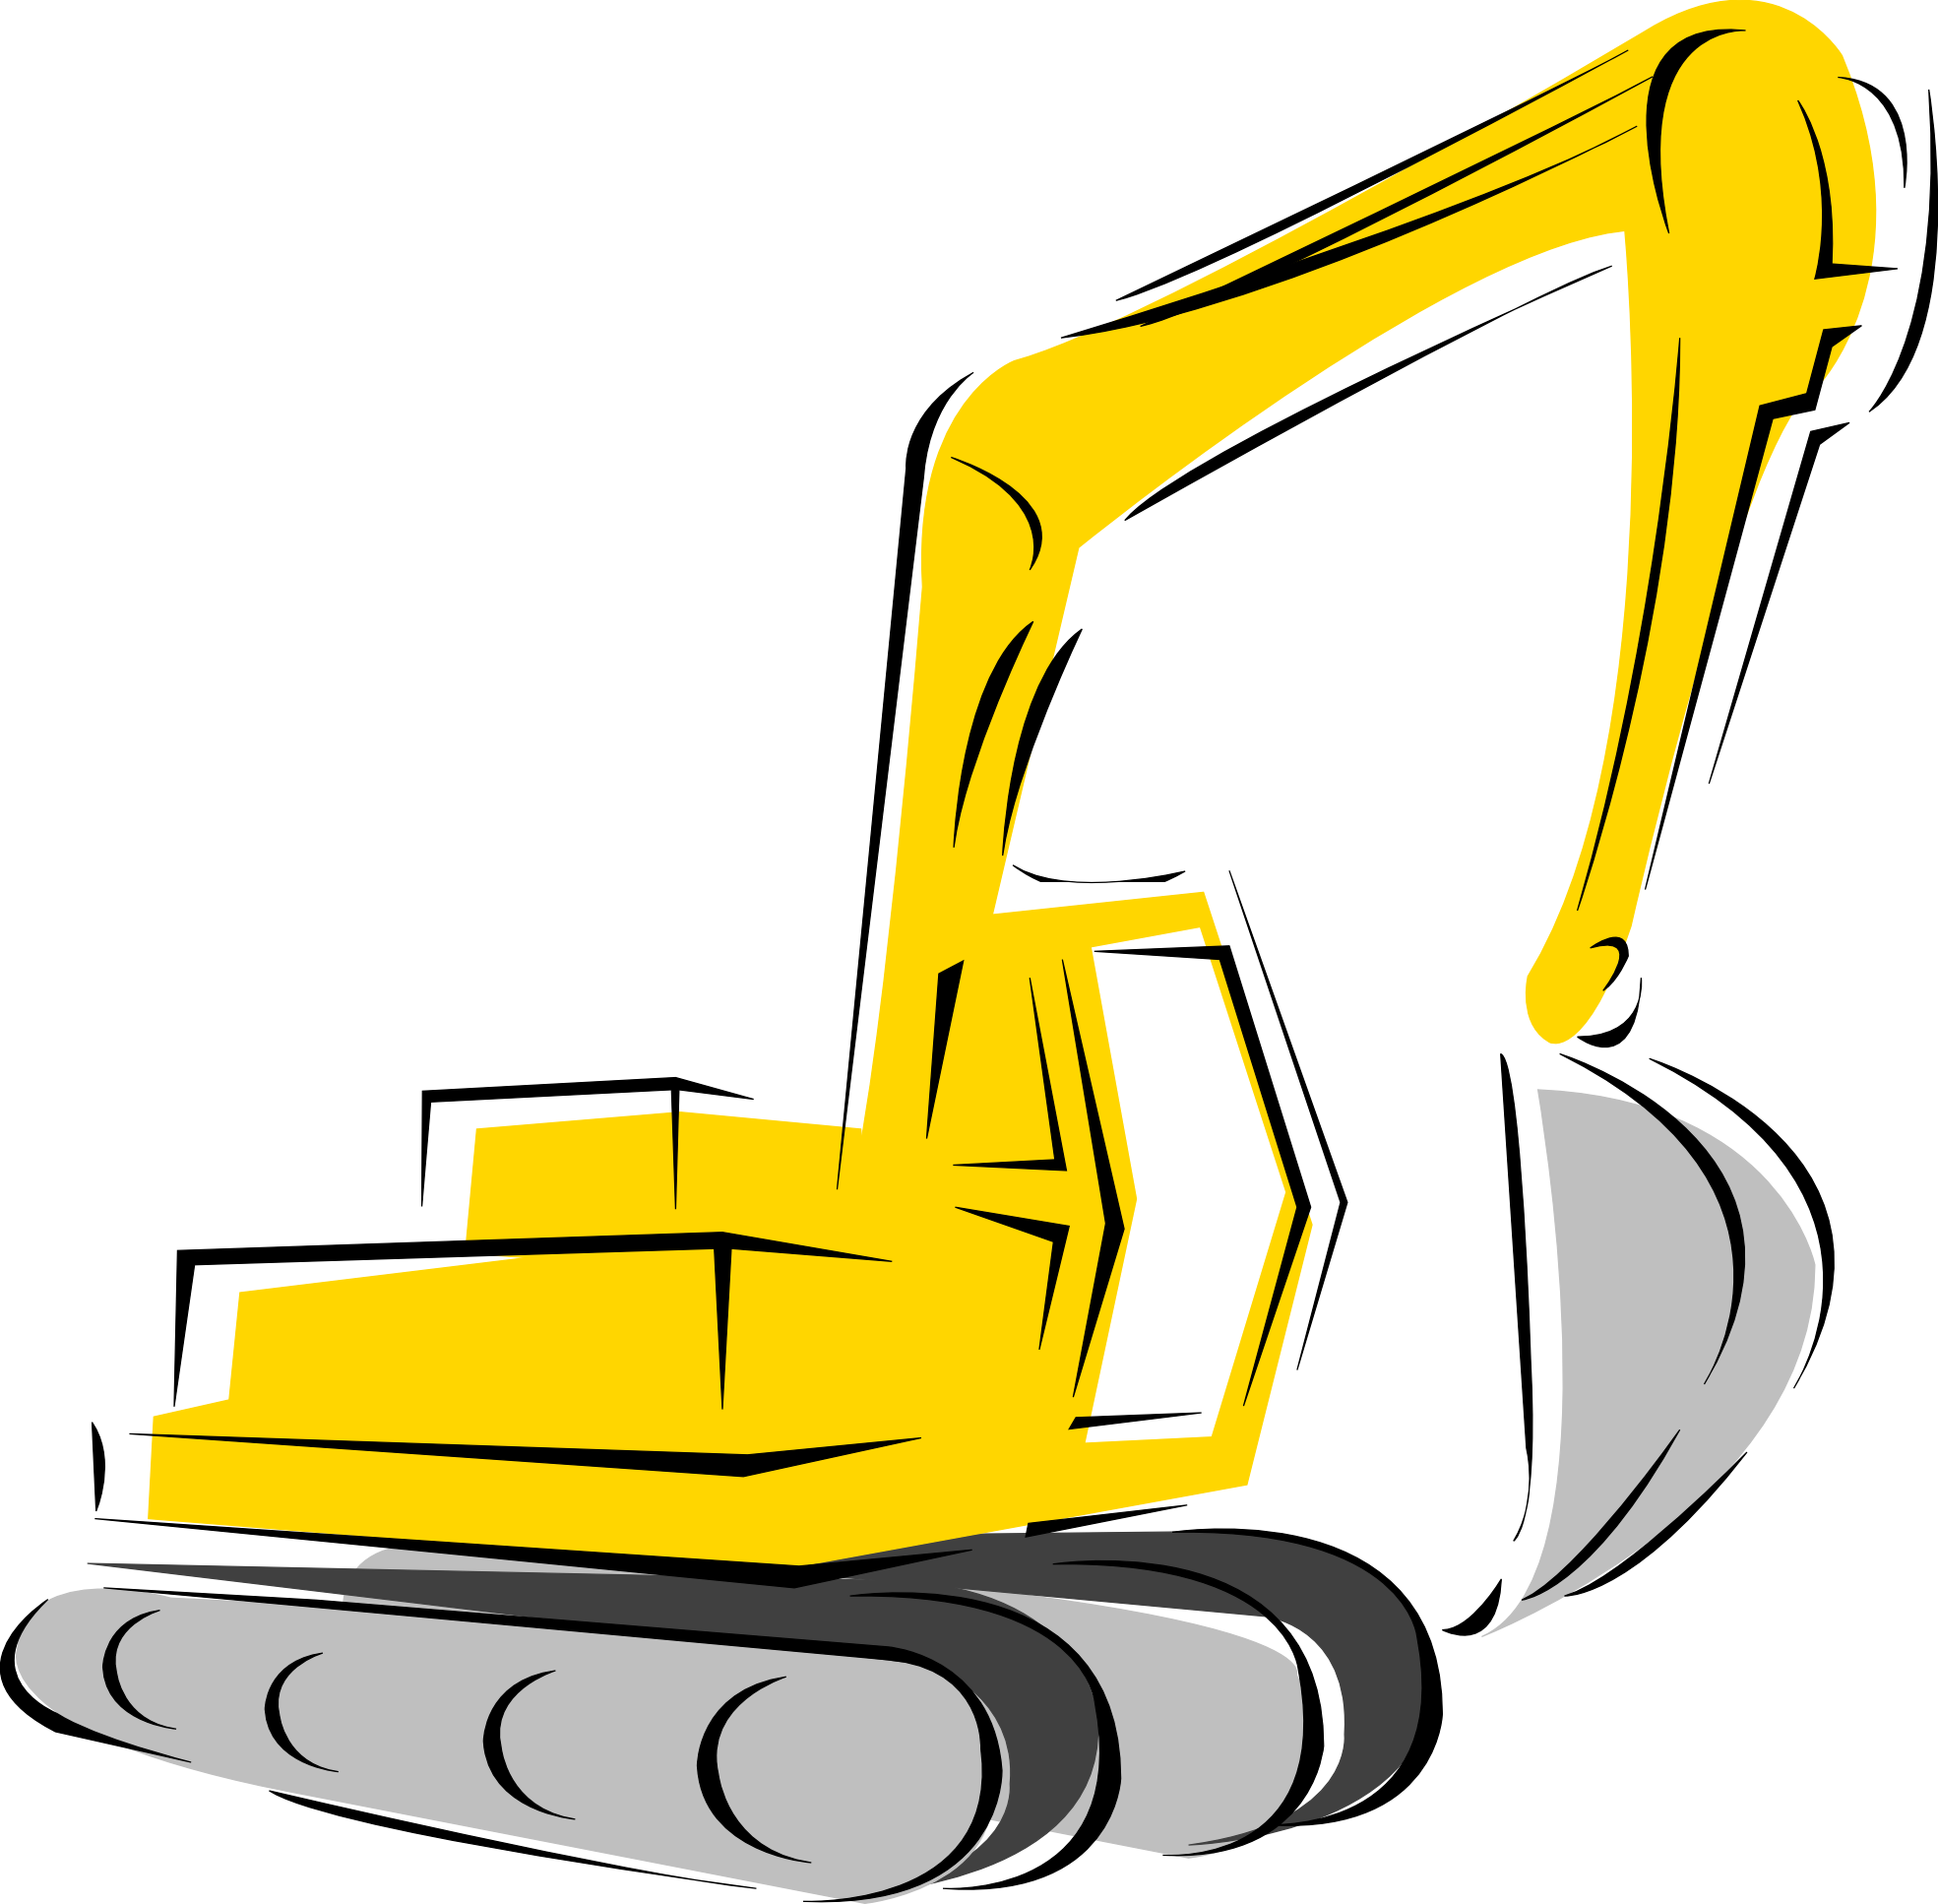 picture royalty free download Bulldozer clipart sketch. Backhoe silhouette at getdrawings